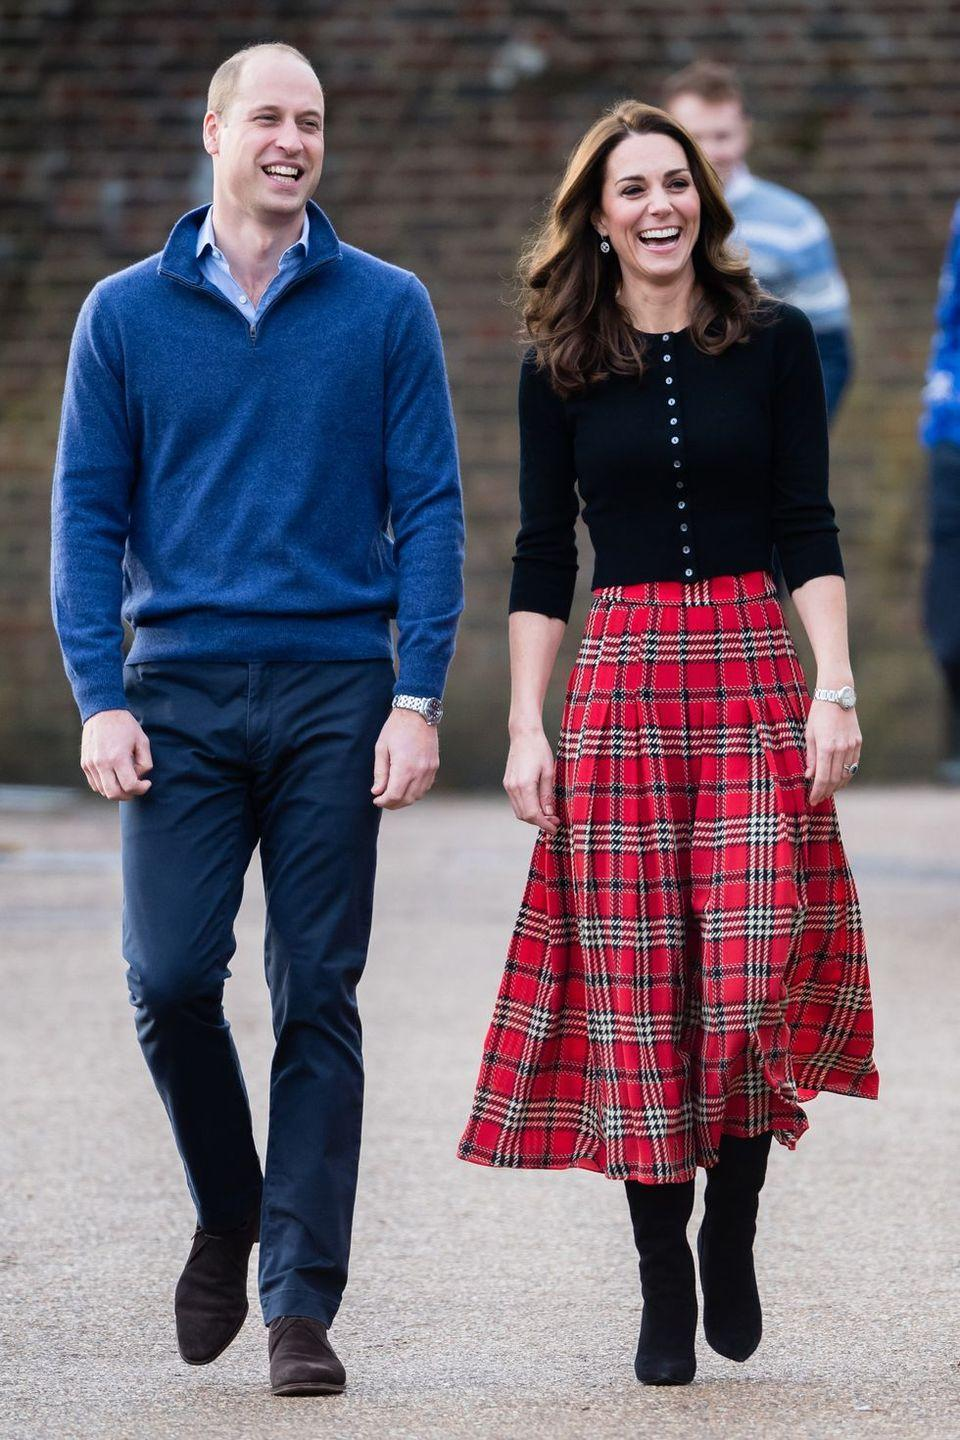 """<p>The duchess was holiday ready in a plaid skirt by Emilia Wickstead and black sweater as she hosted <a href=""""https://www.harpersbazaar.com/celebrity/latest/a25392847/kate-middleton-emilia-wickstead-plaid-skirt-christmas-party/"""" rel=""""nofollow noopener"""" target=""""_blank"""" data-ylk=""""slk:a Christmas party"""" class=""""link rapid-noclick-resp"""">a Christmas party</a> for military families with Prince William. </p>"""